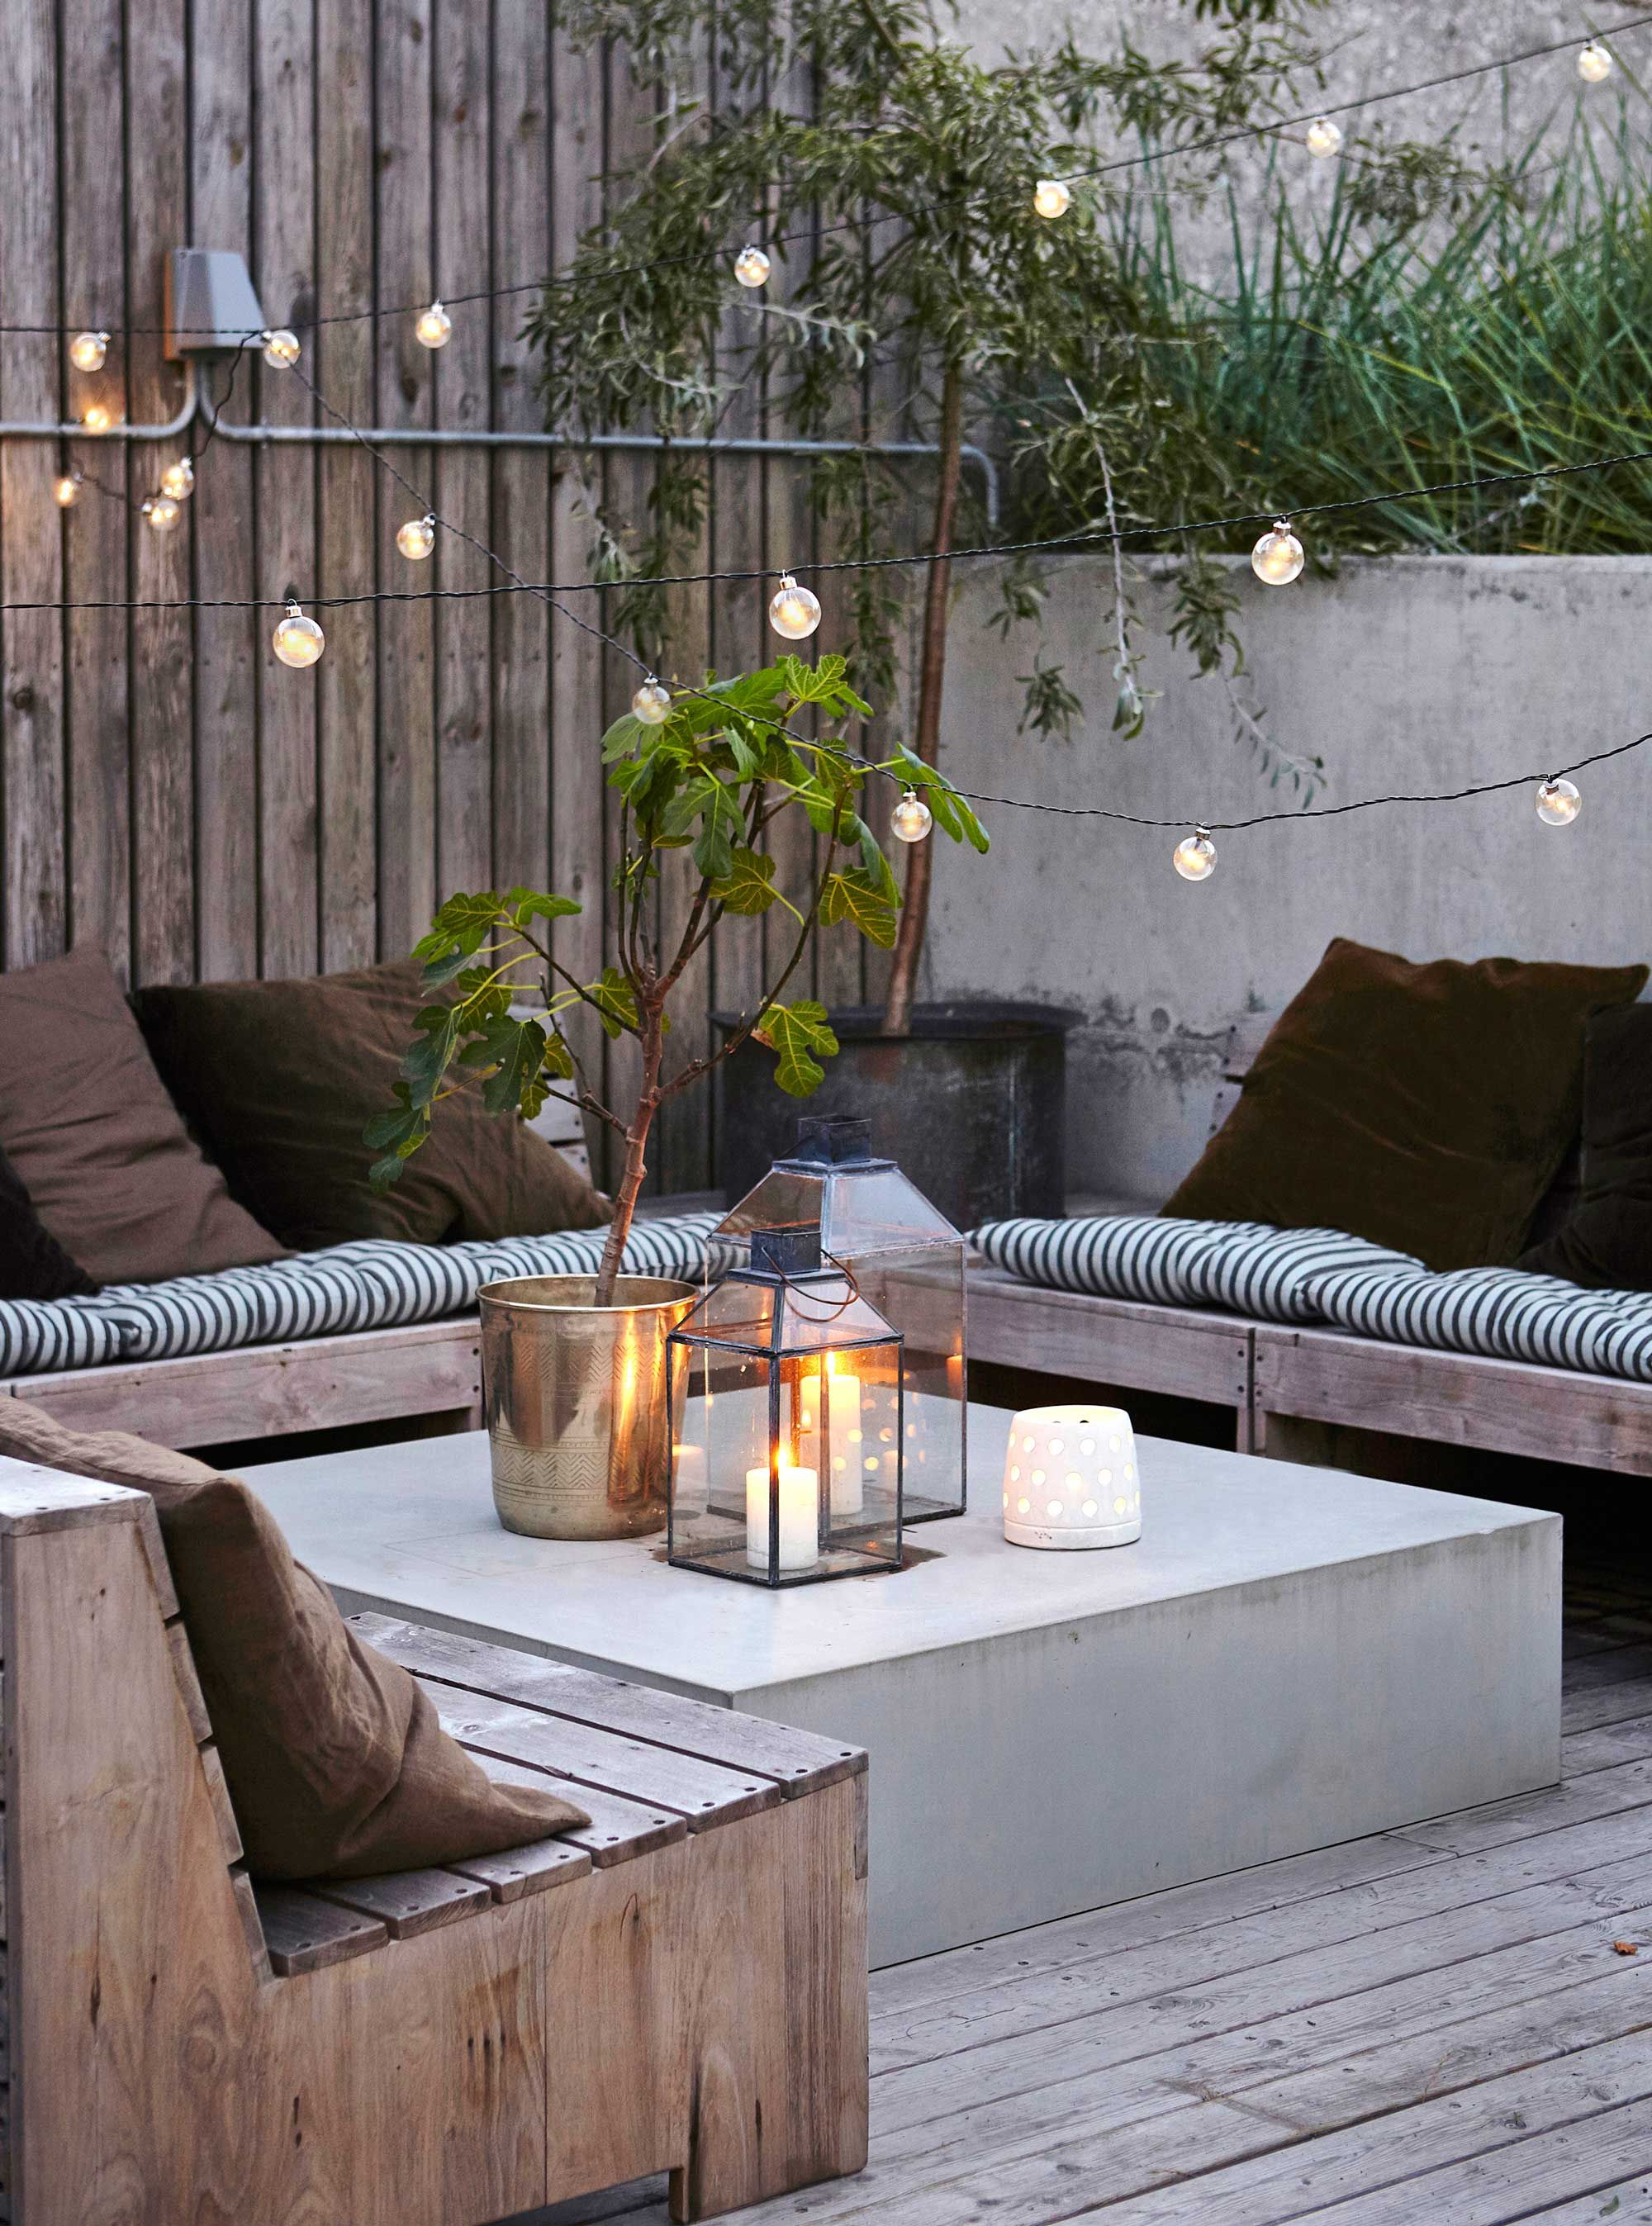 garten lounge ecke stimmung lichter garden design pinterest garten terrasse and garten lounge. Black Bedroom Furniture Sets. Home Design Ideas